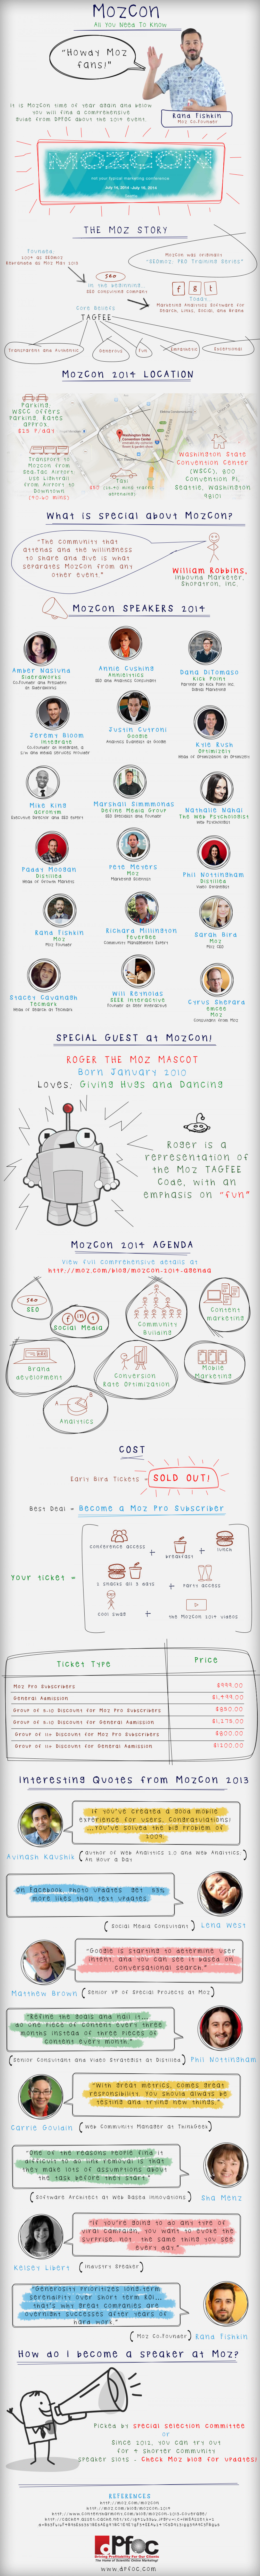 All About MozCon Infographic